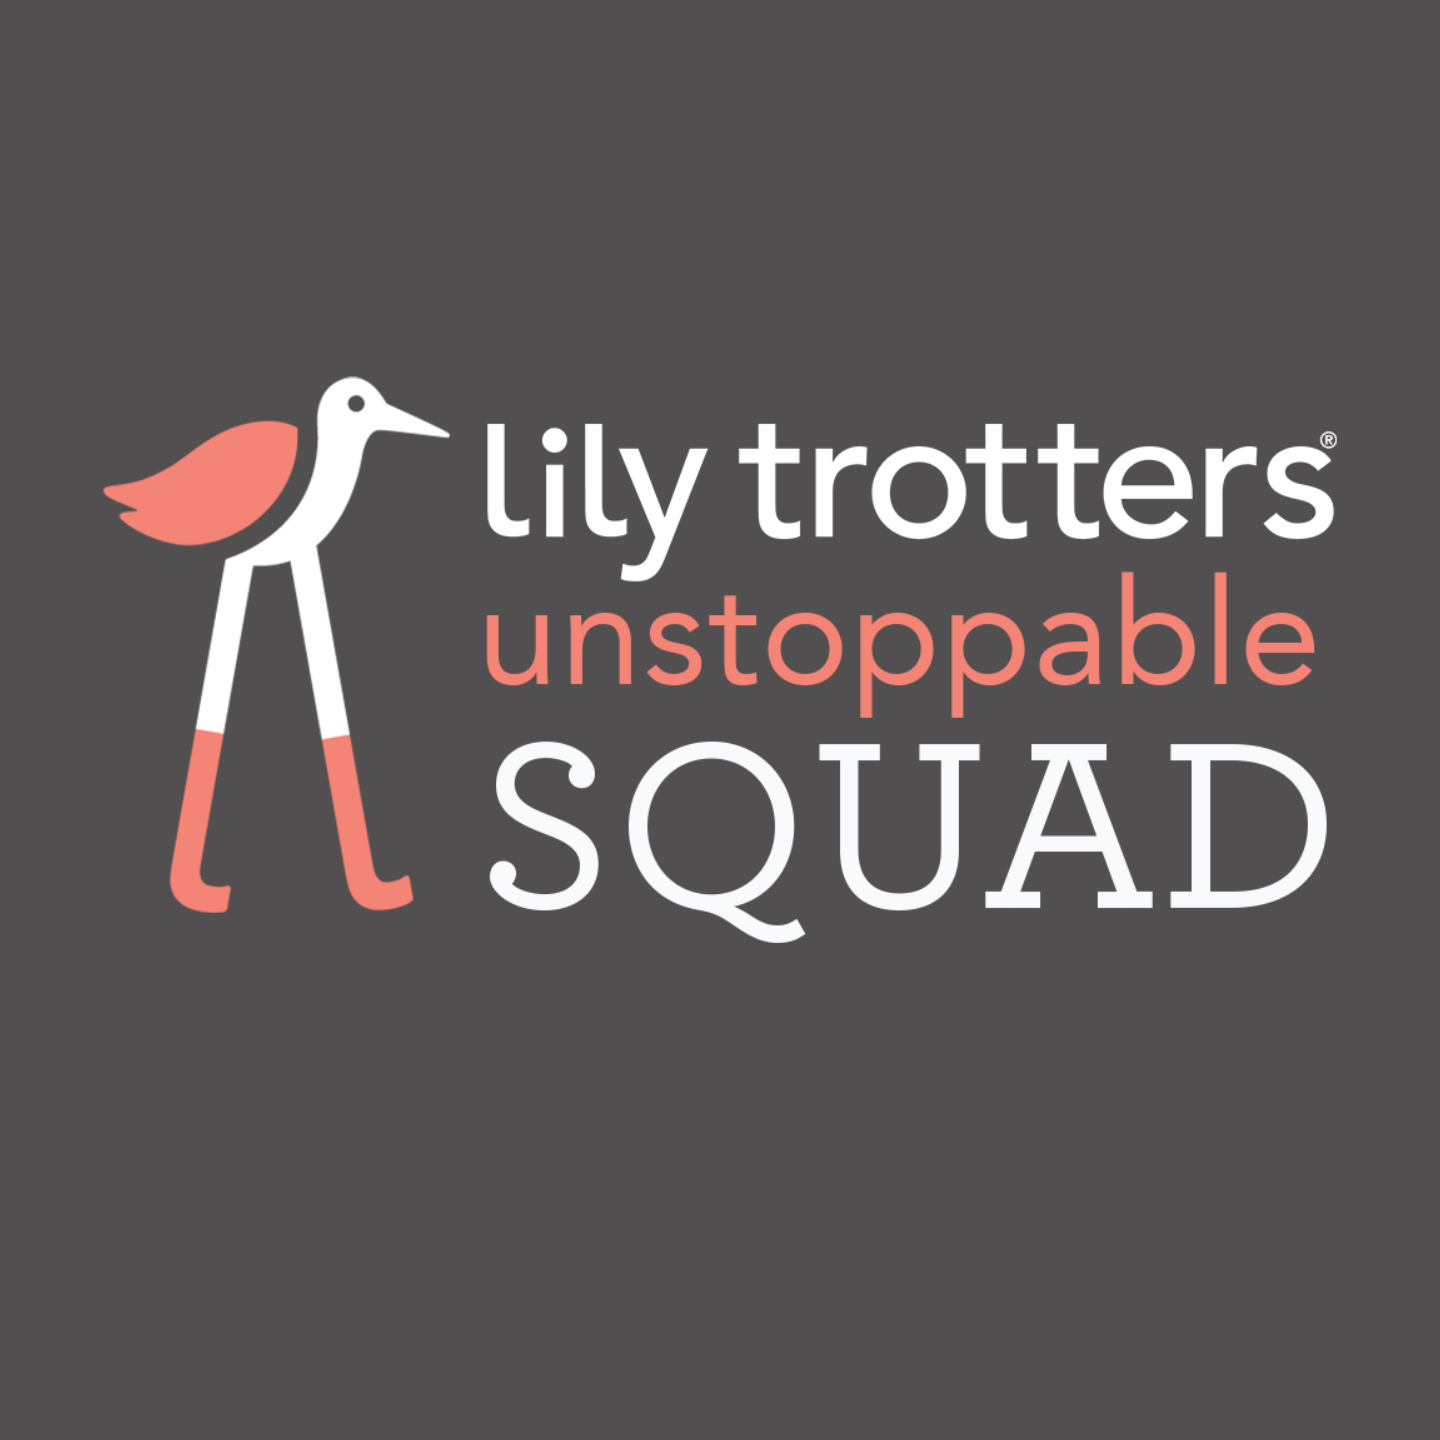 proud member of the lily trotters unstoppable squad